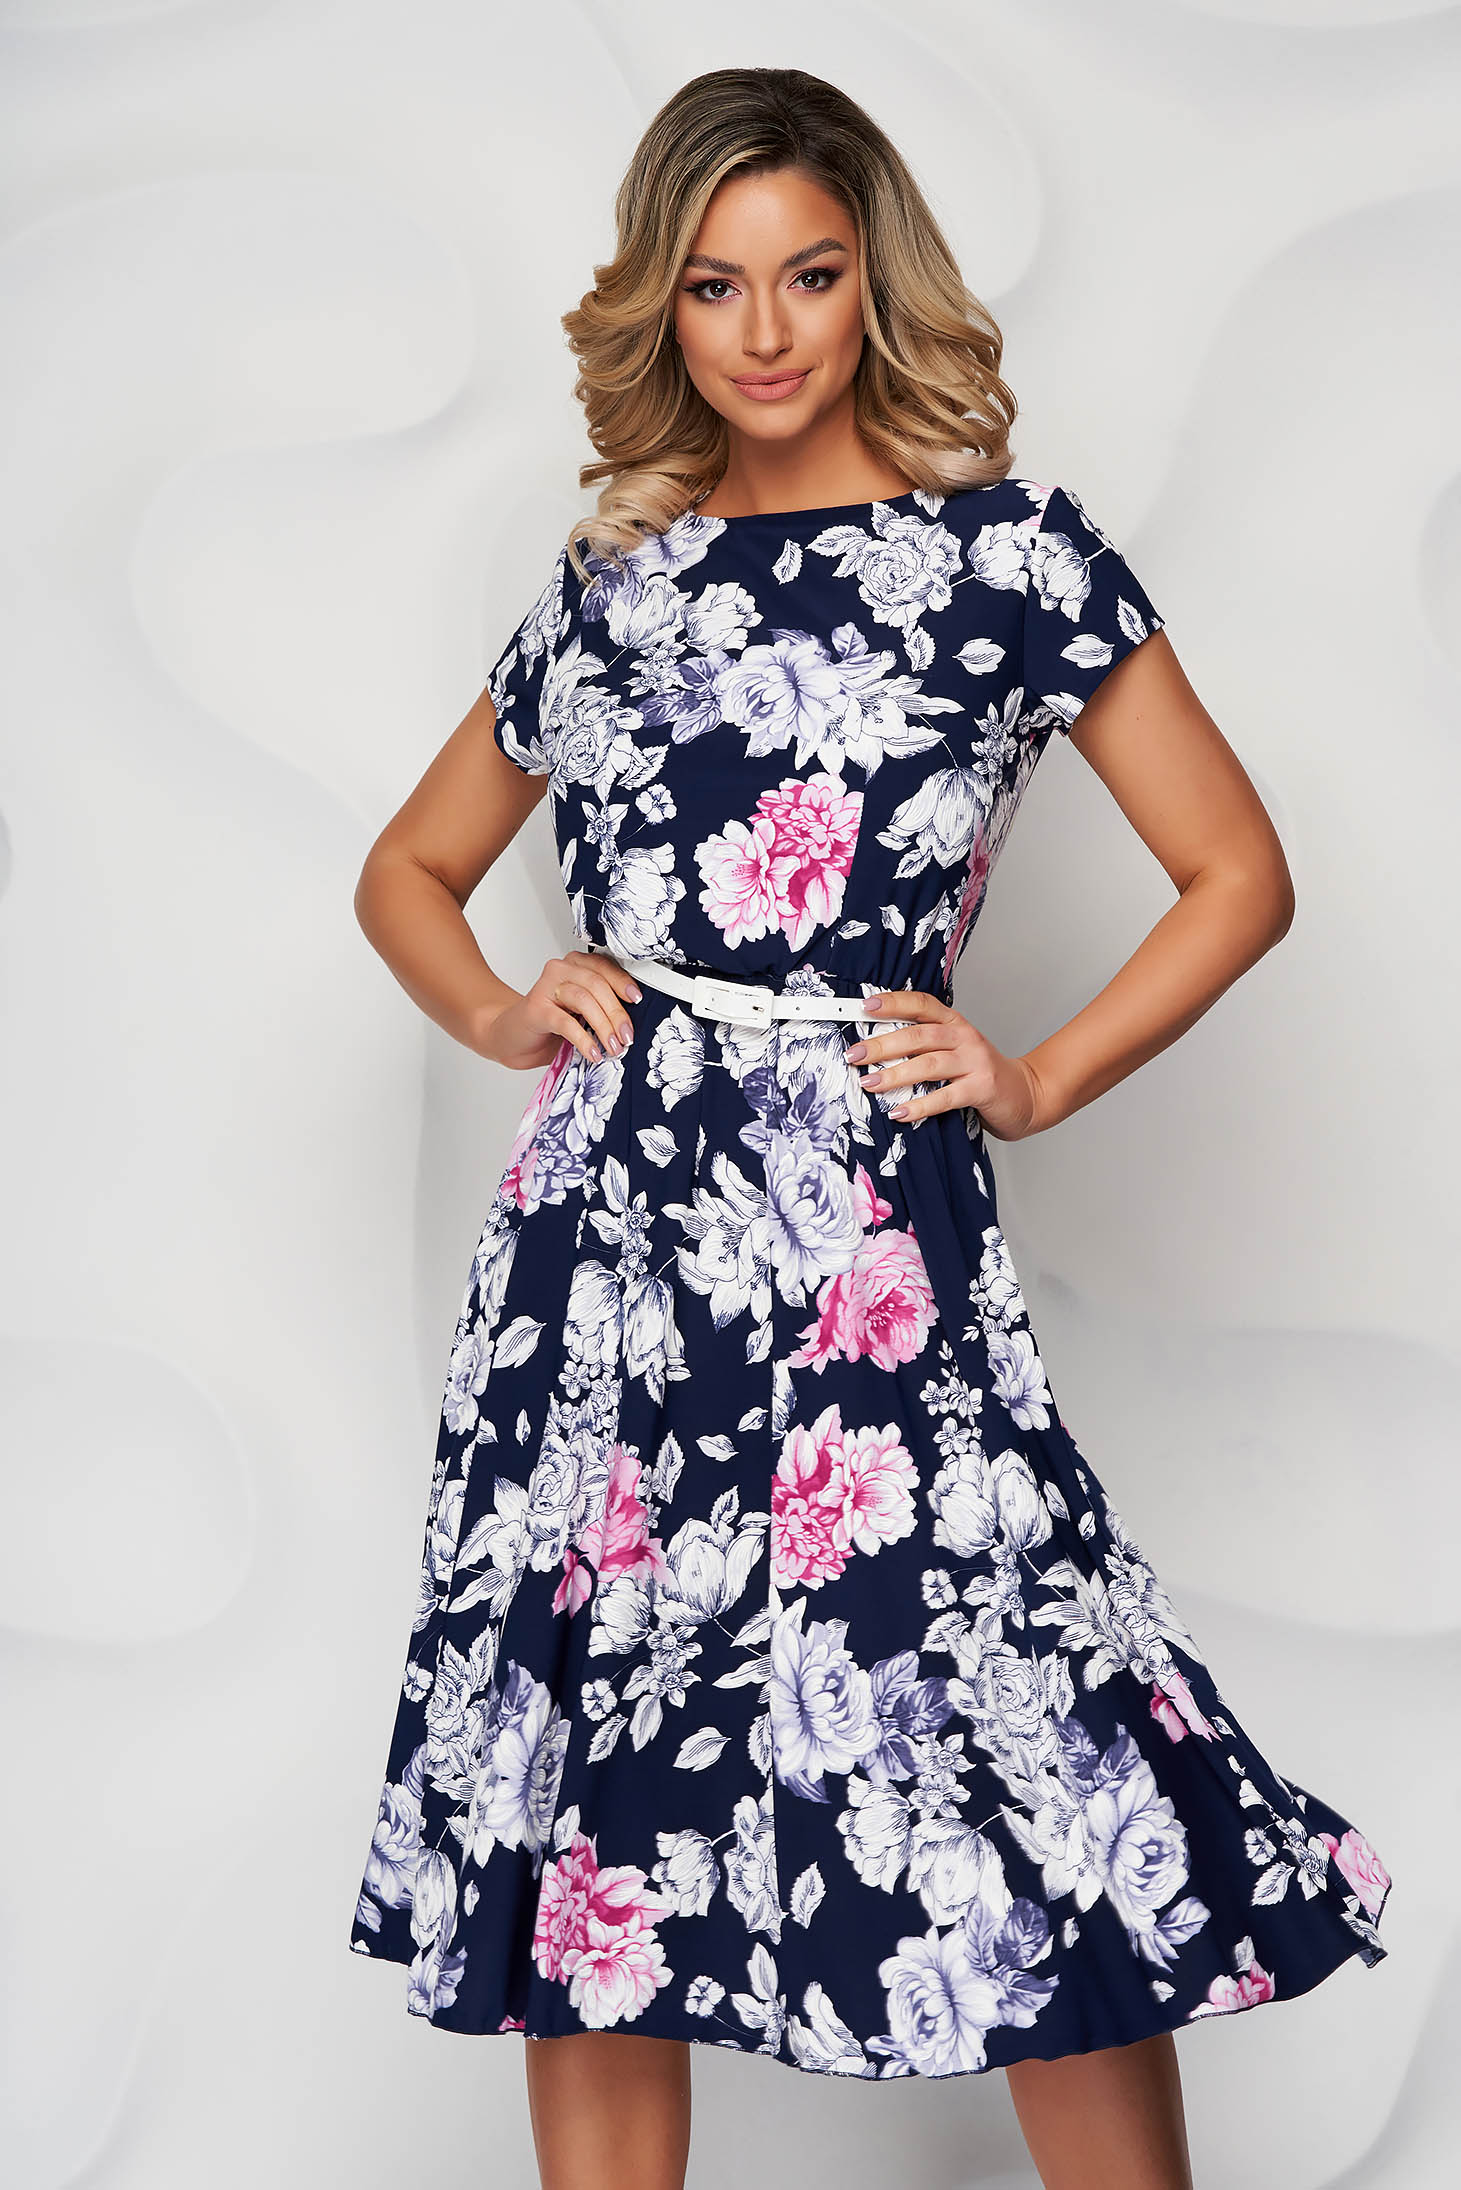 Darkblue dress with floral print cloche from elastic fabric accessorized with belt